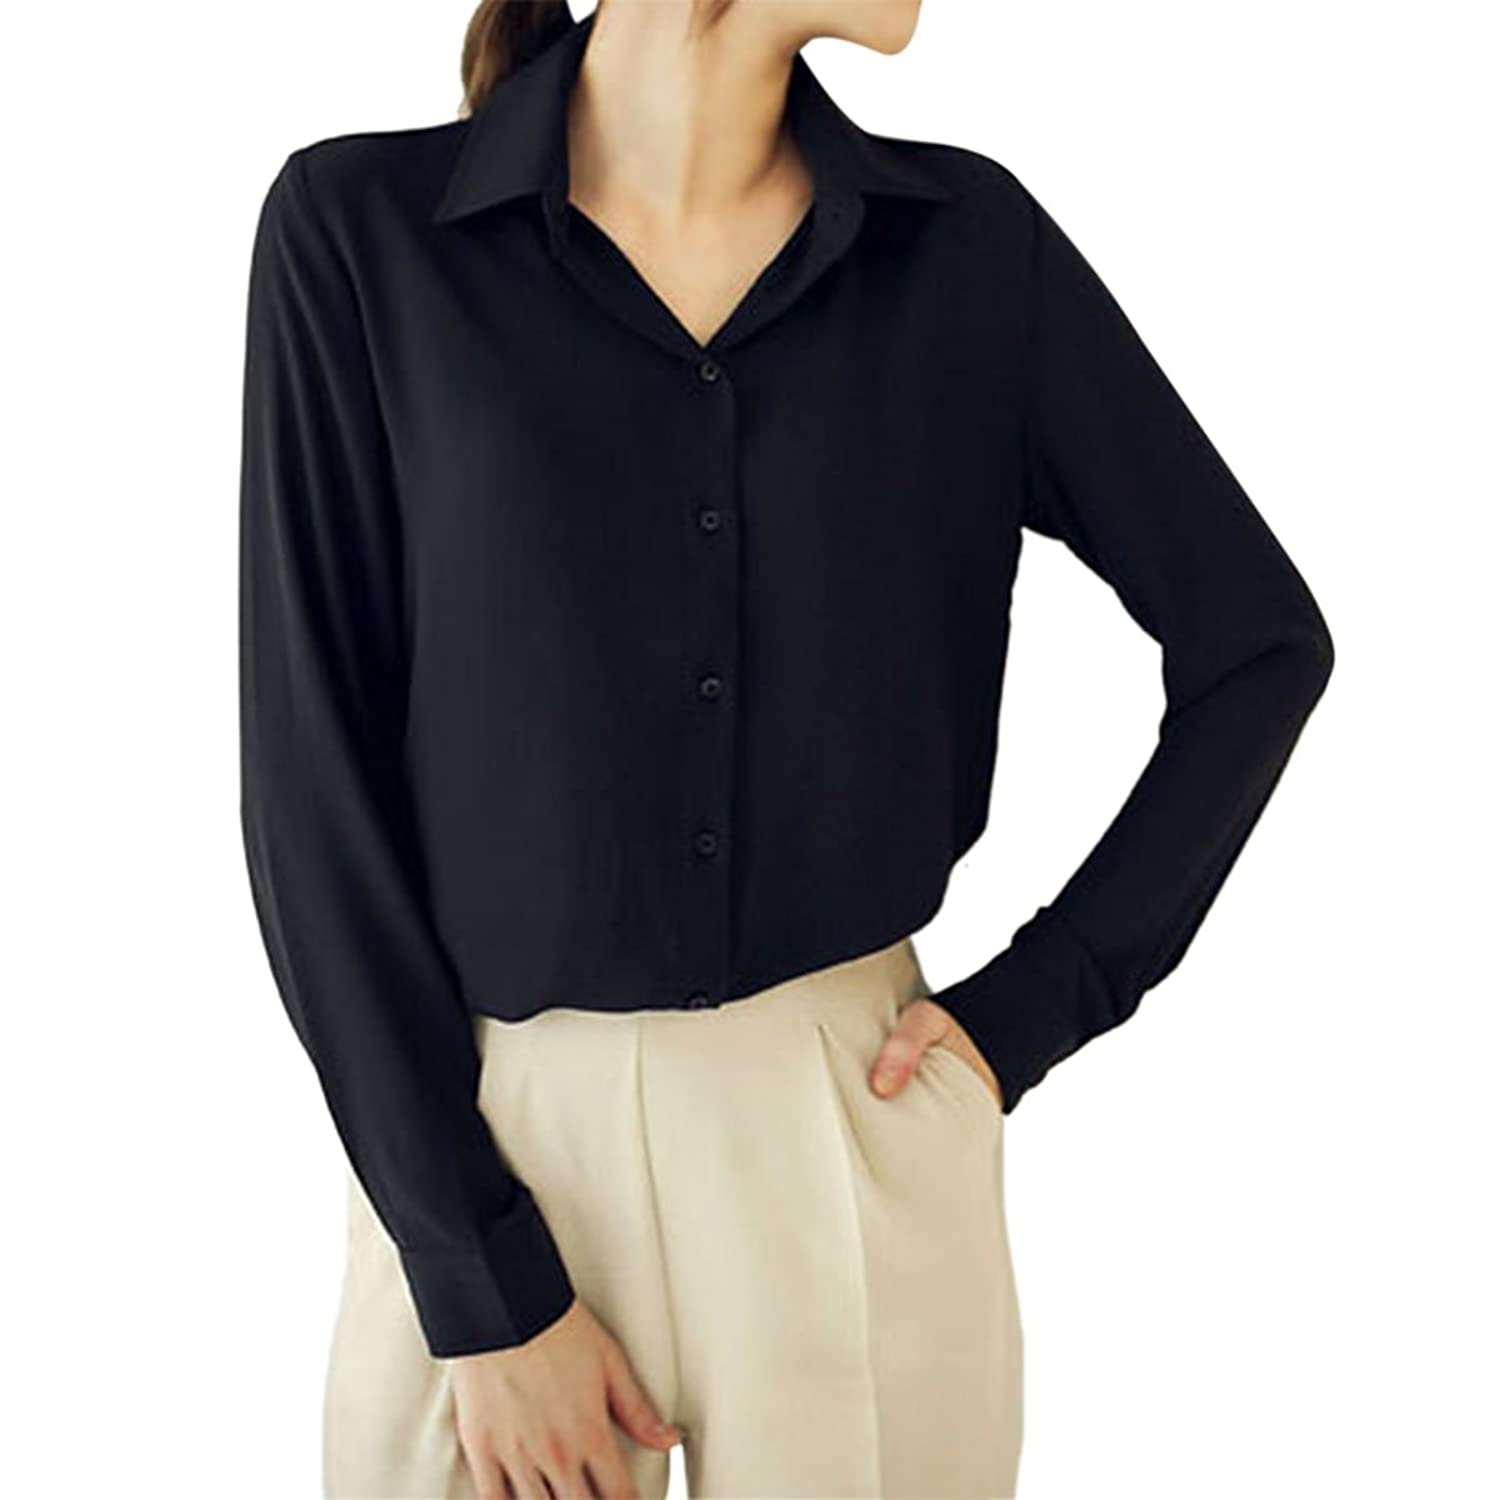 Shop for womens black collared shirt online at Target. Free shipping on purchases over $35 and save 5% every day with your Target REDcard.